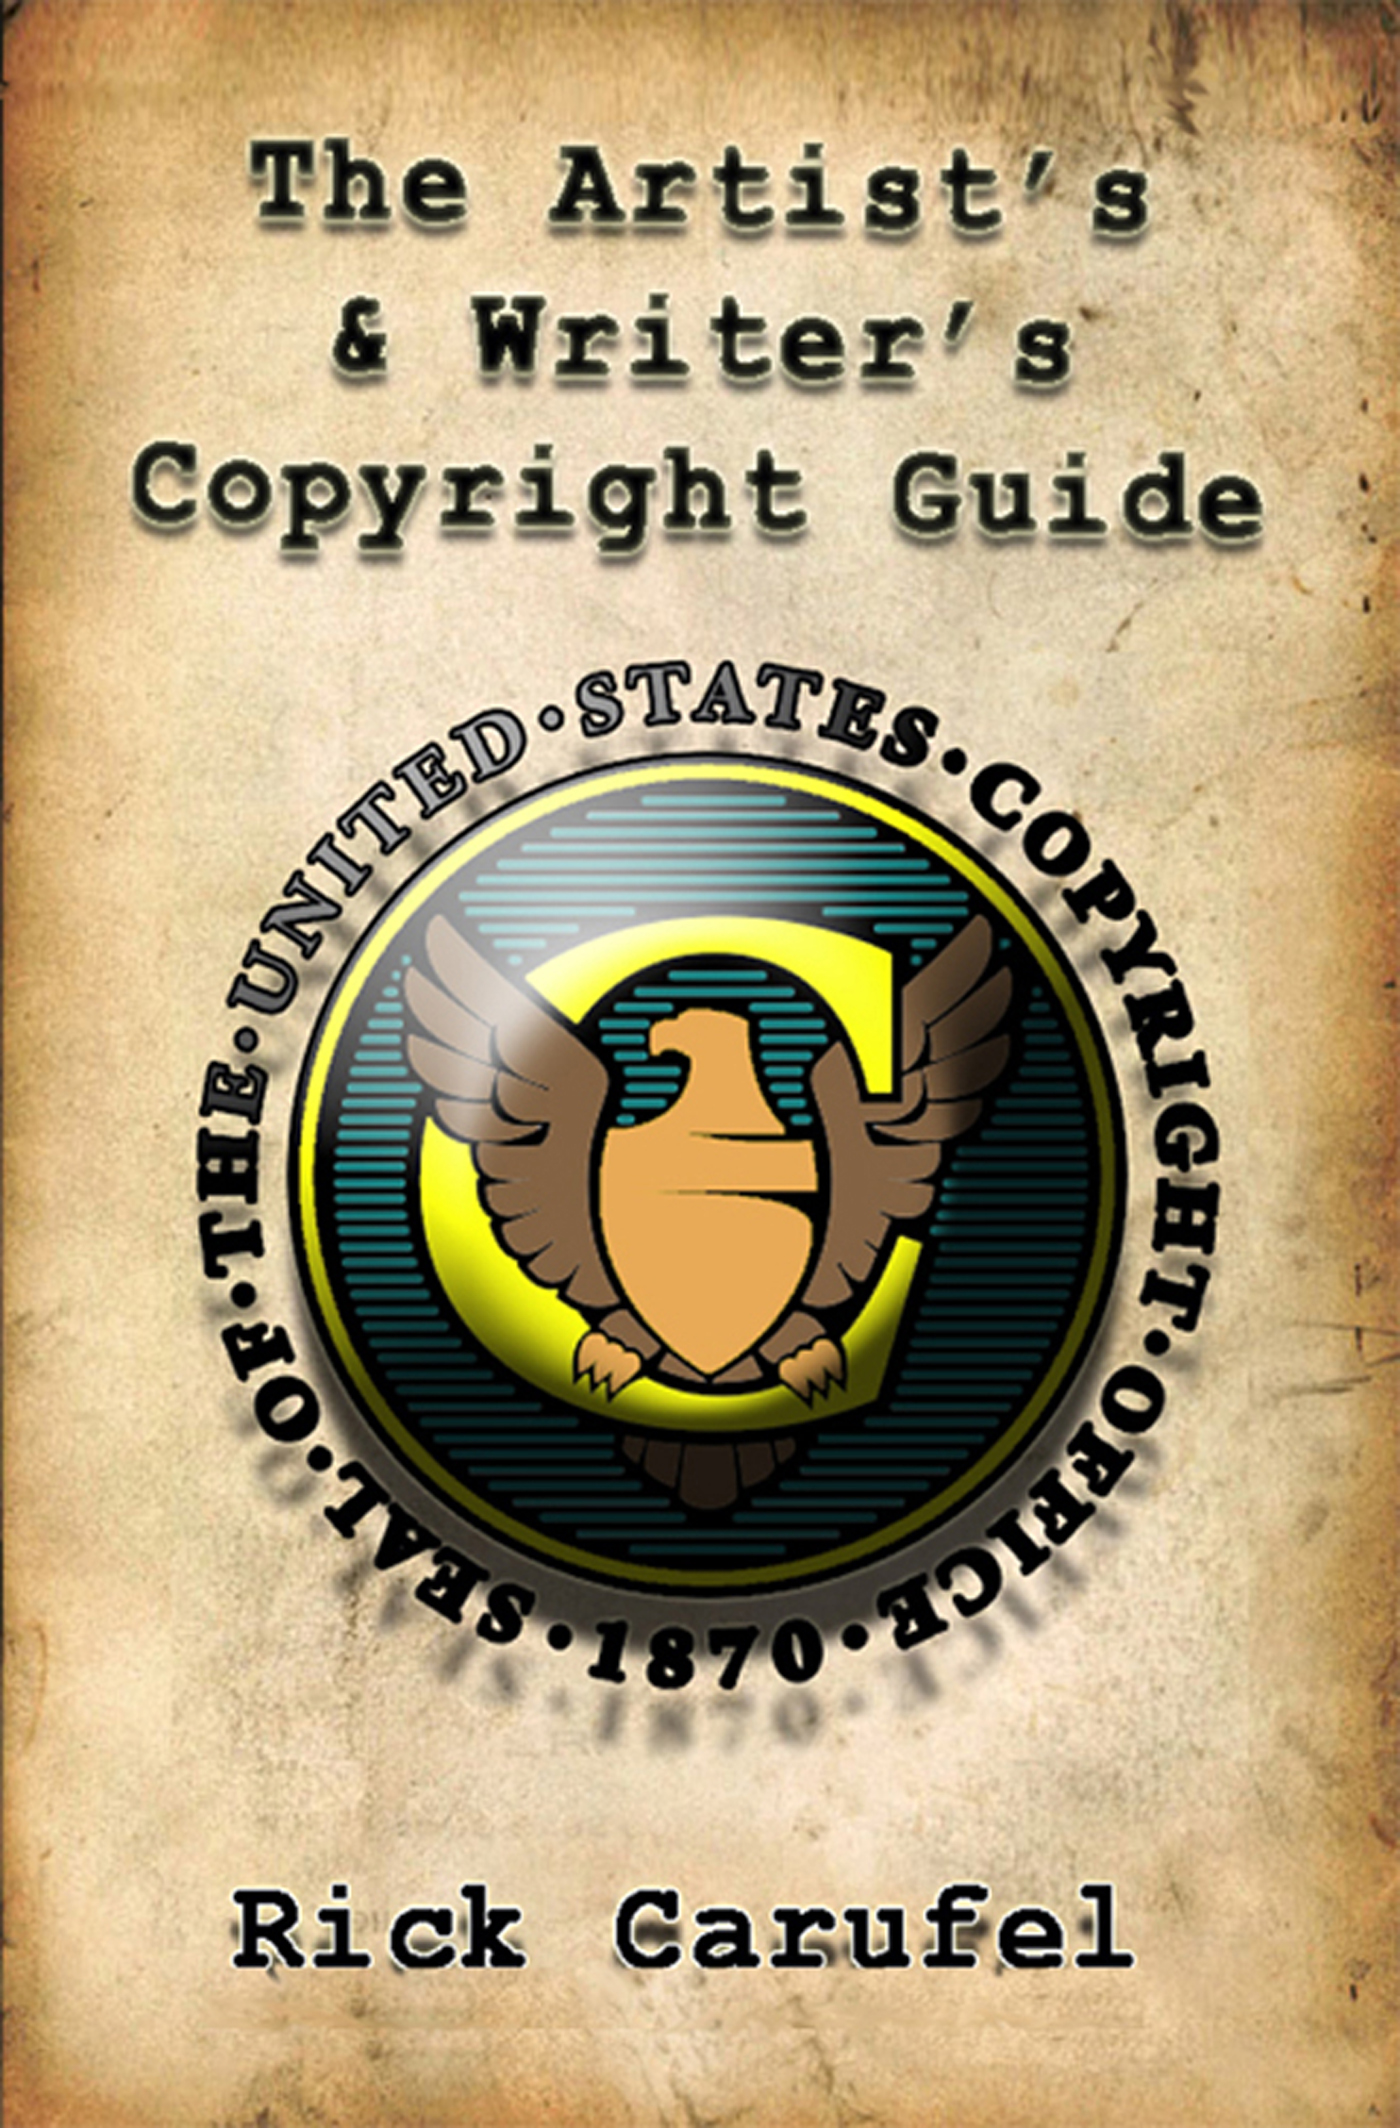 Rick Carufel - The Artist's and Writer's Copyright Guide